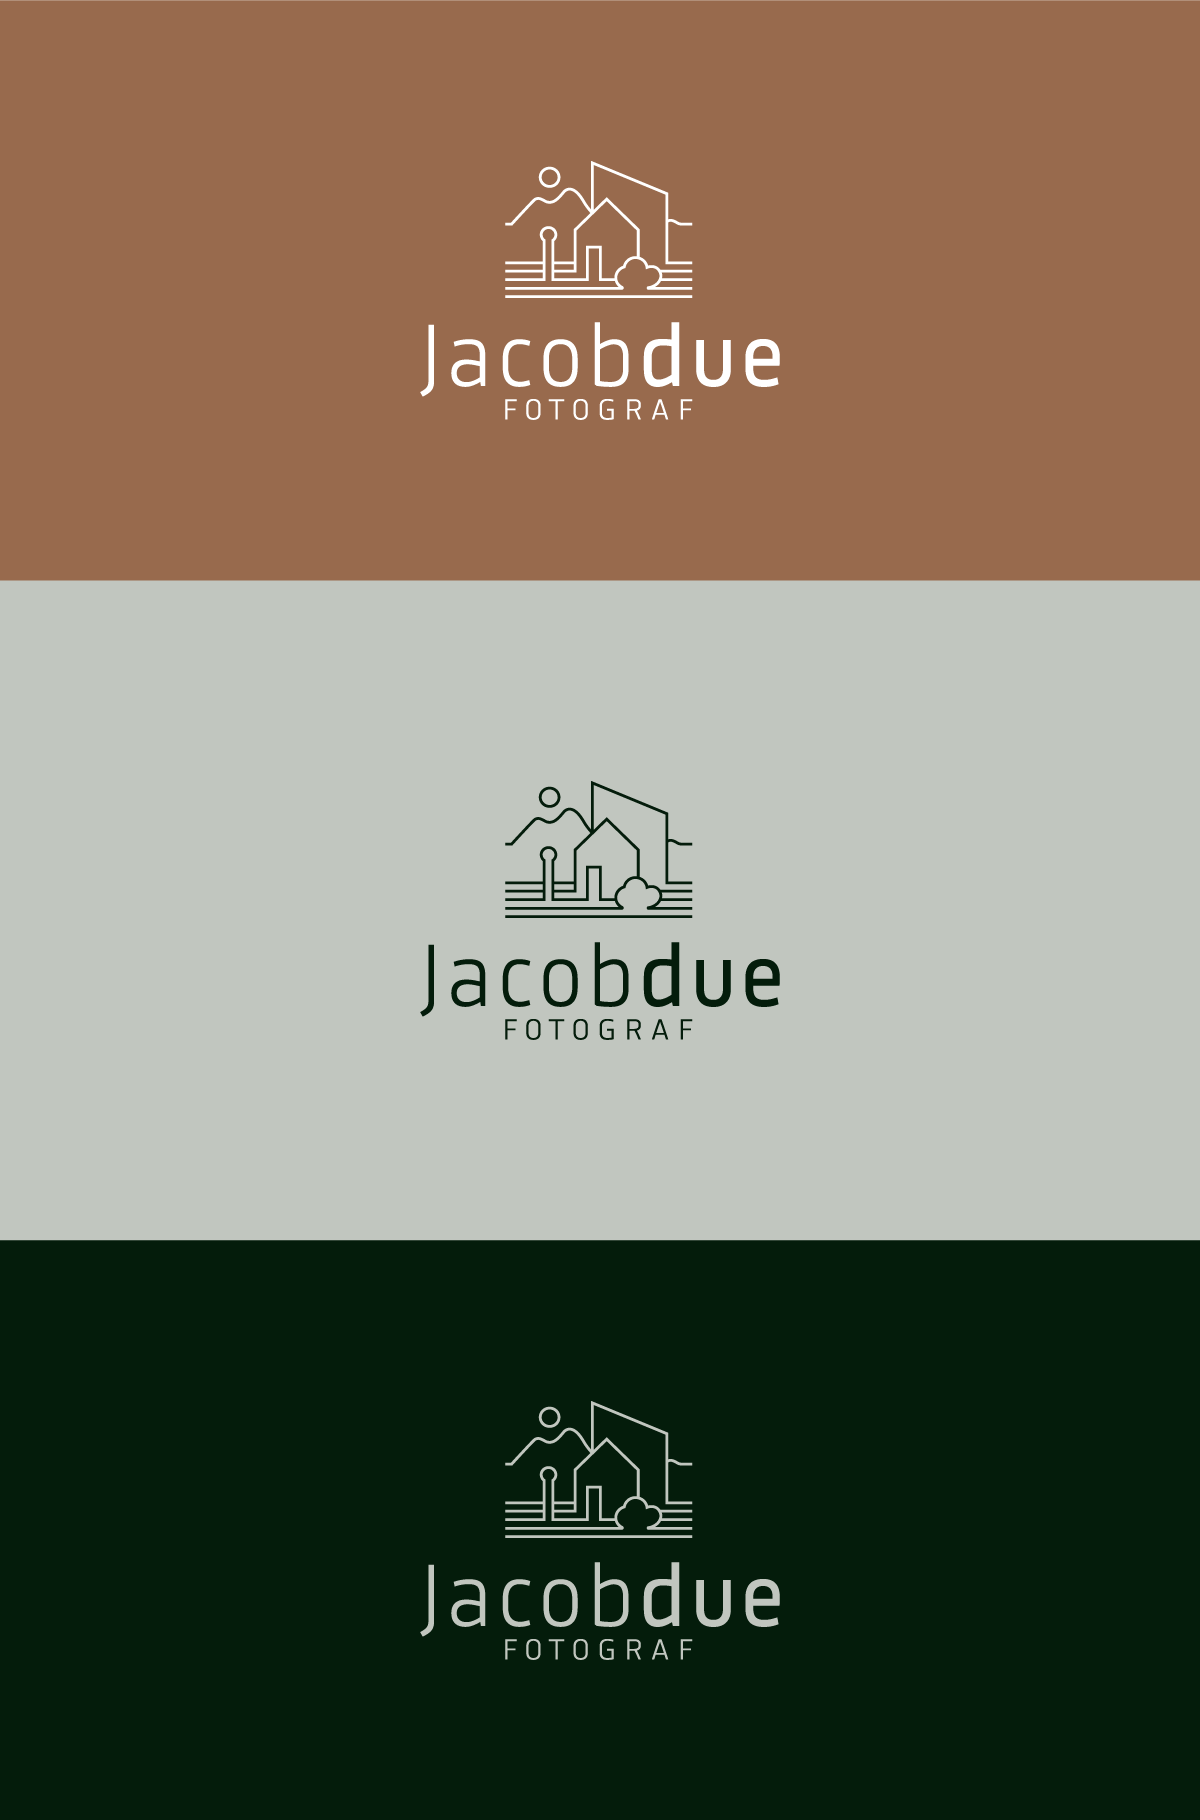 Jacob Due Logo versioner